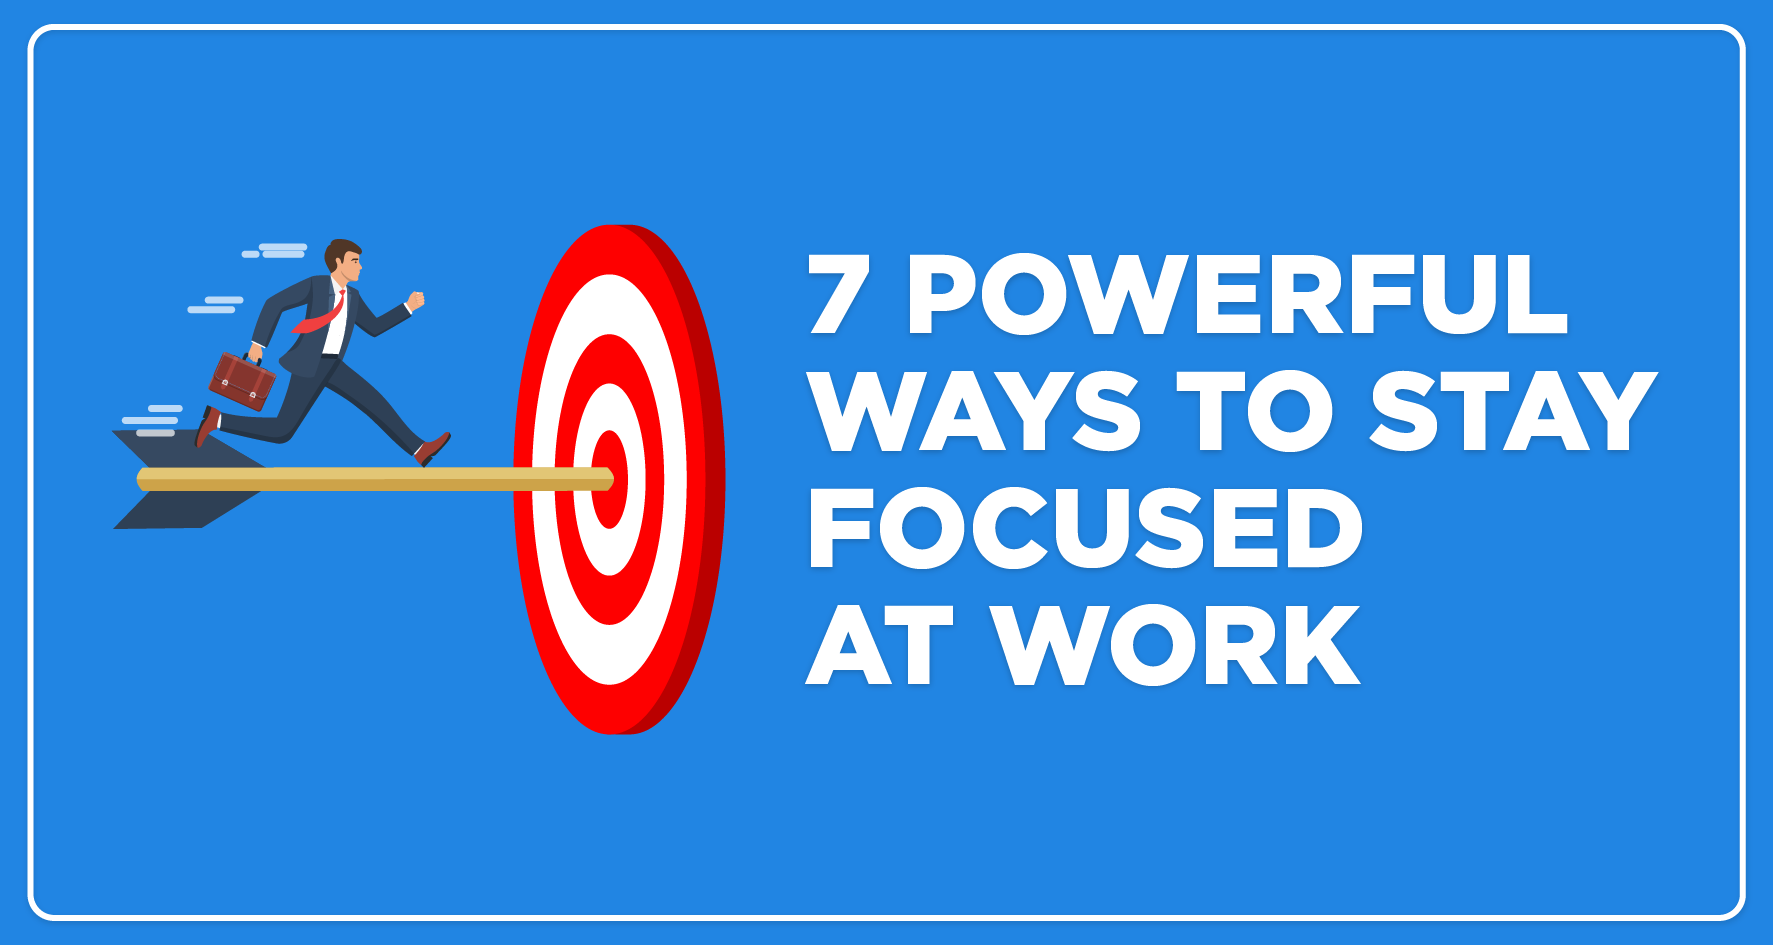 7 powerful ways to stay focused at work